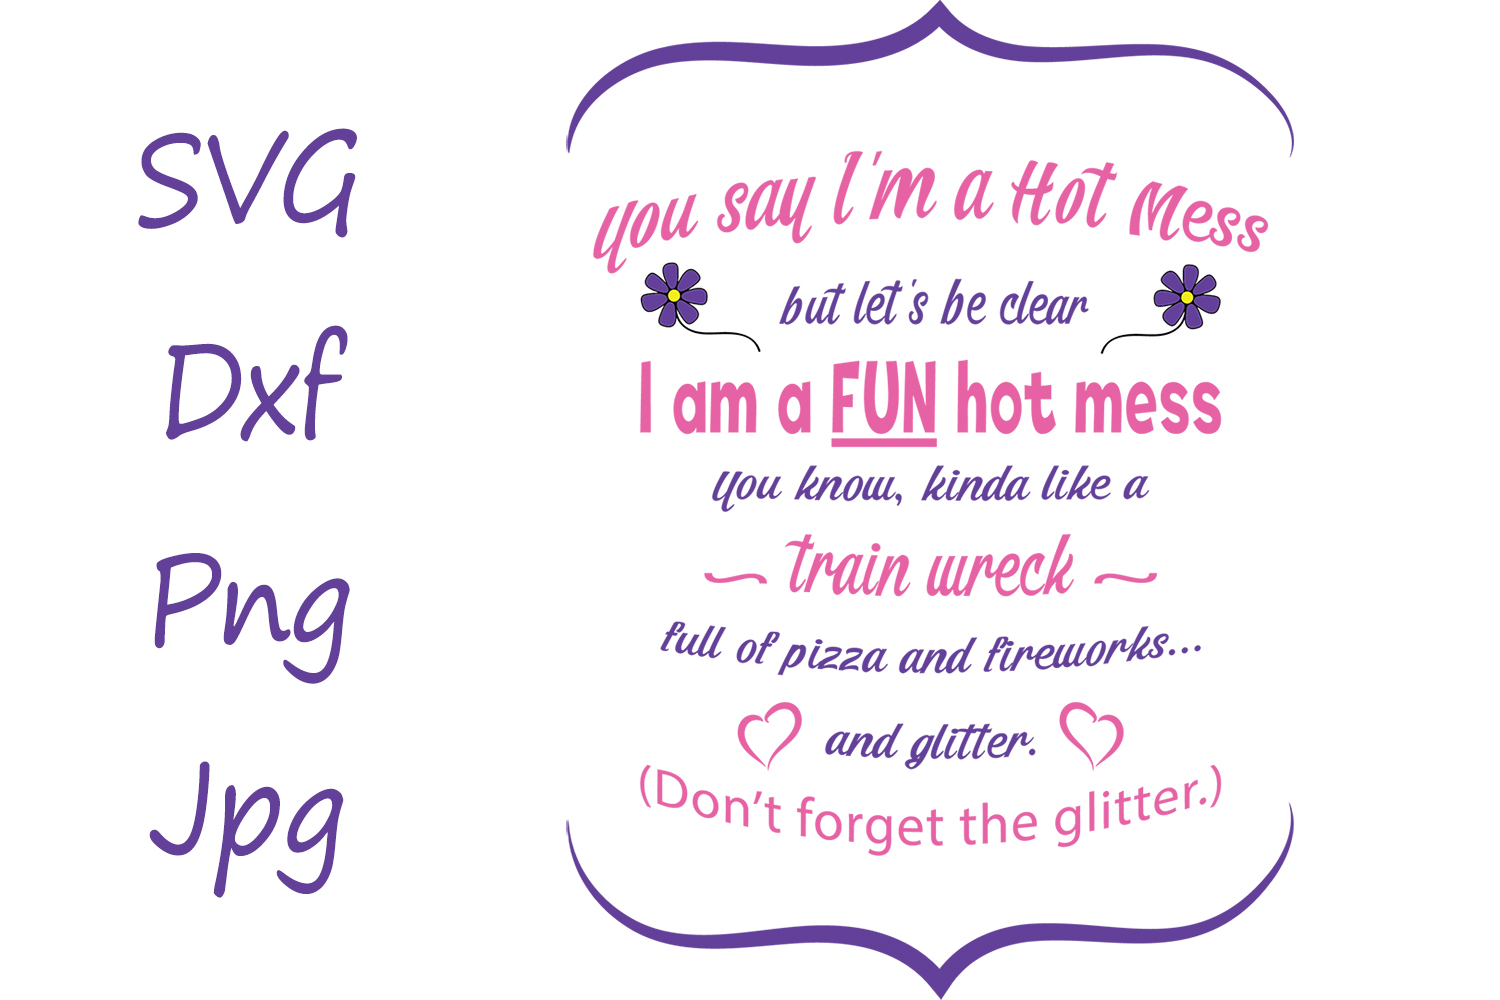 Fun Hot Mess SVG/DXF Cut File example image 2